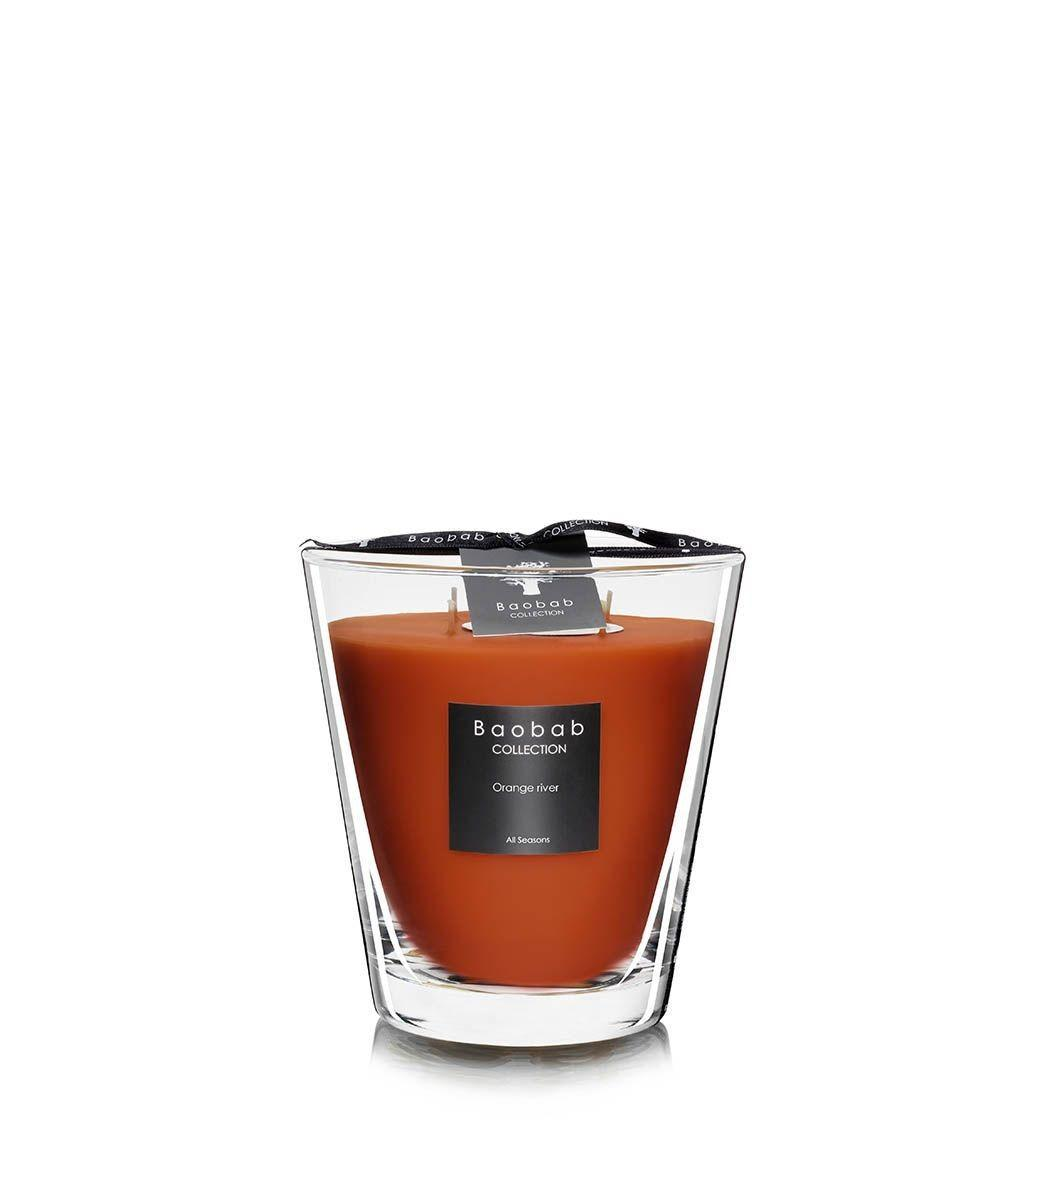 Scented Candles Baobab Collection Orange River